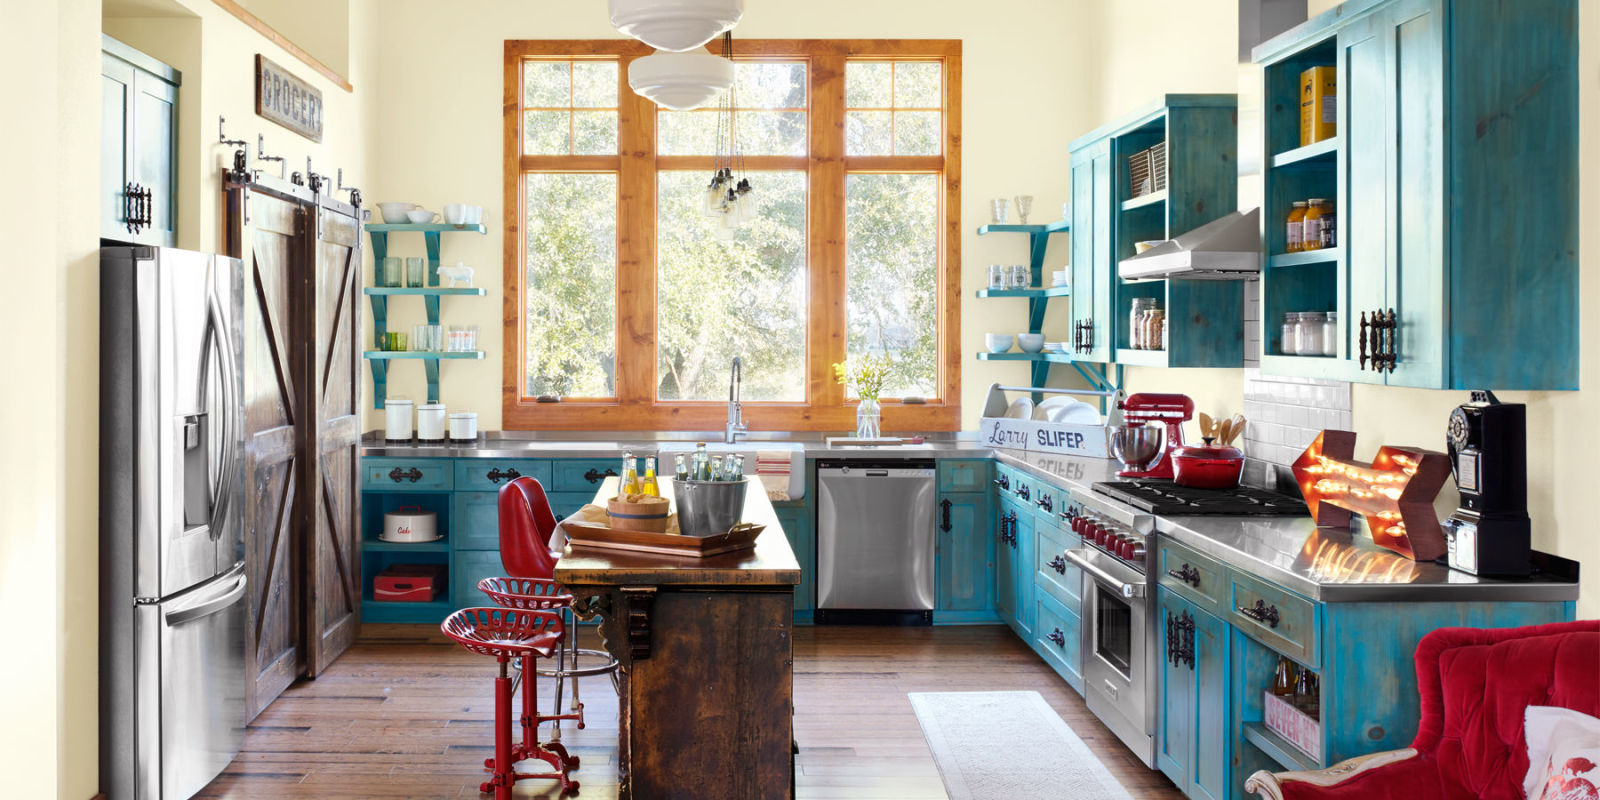 10 Ways To Add Colorful Vintage Style To Your Kitchen Junk Gypsies Decorating Ideas